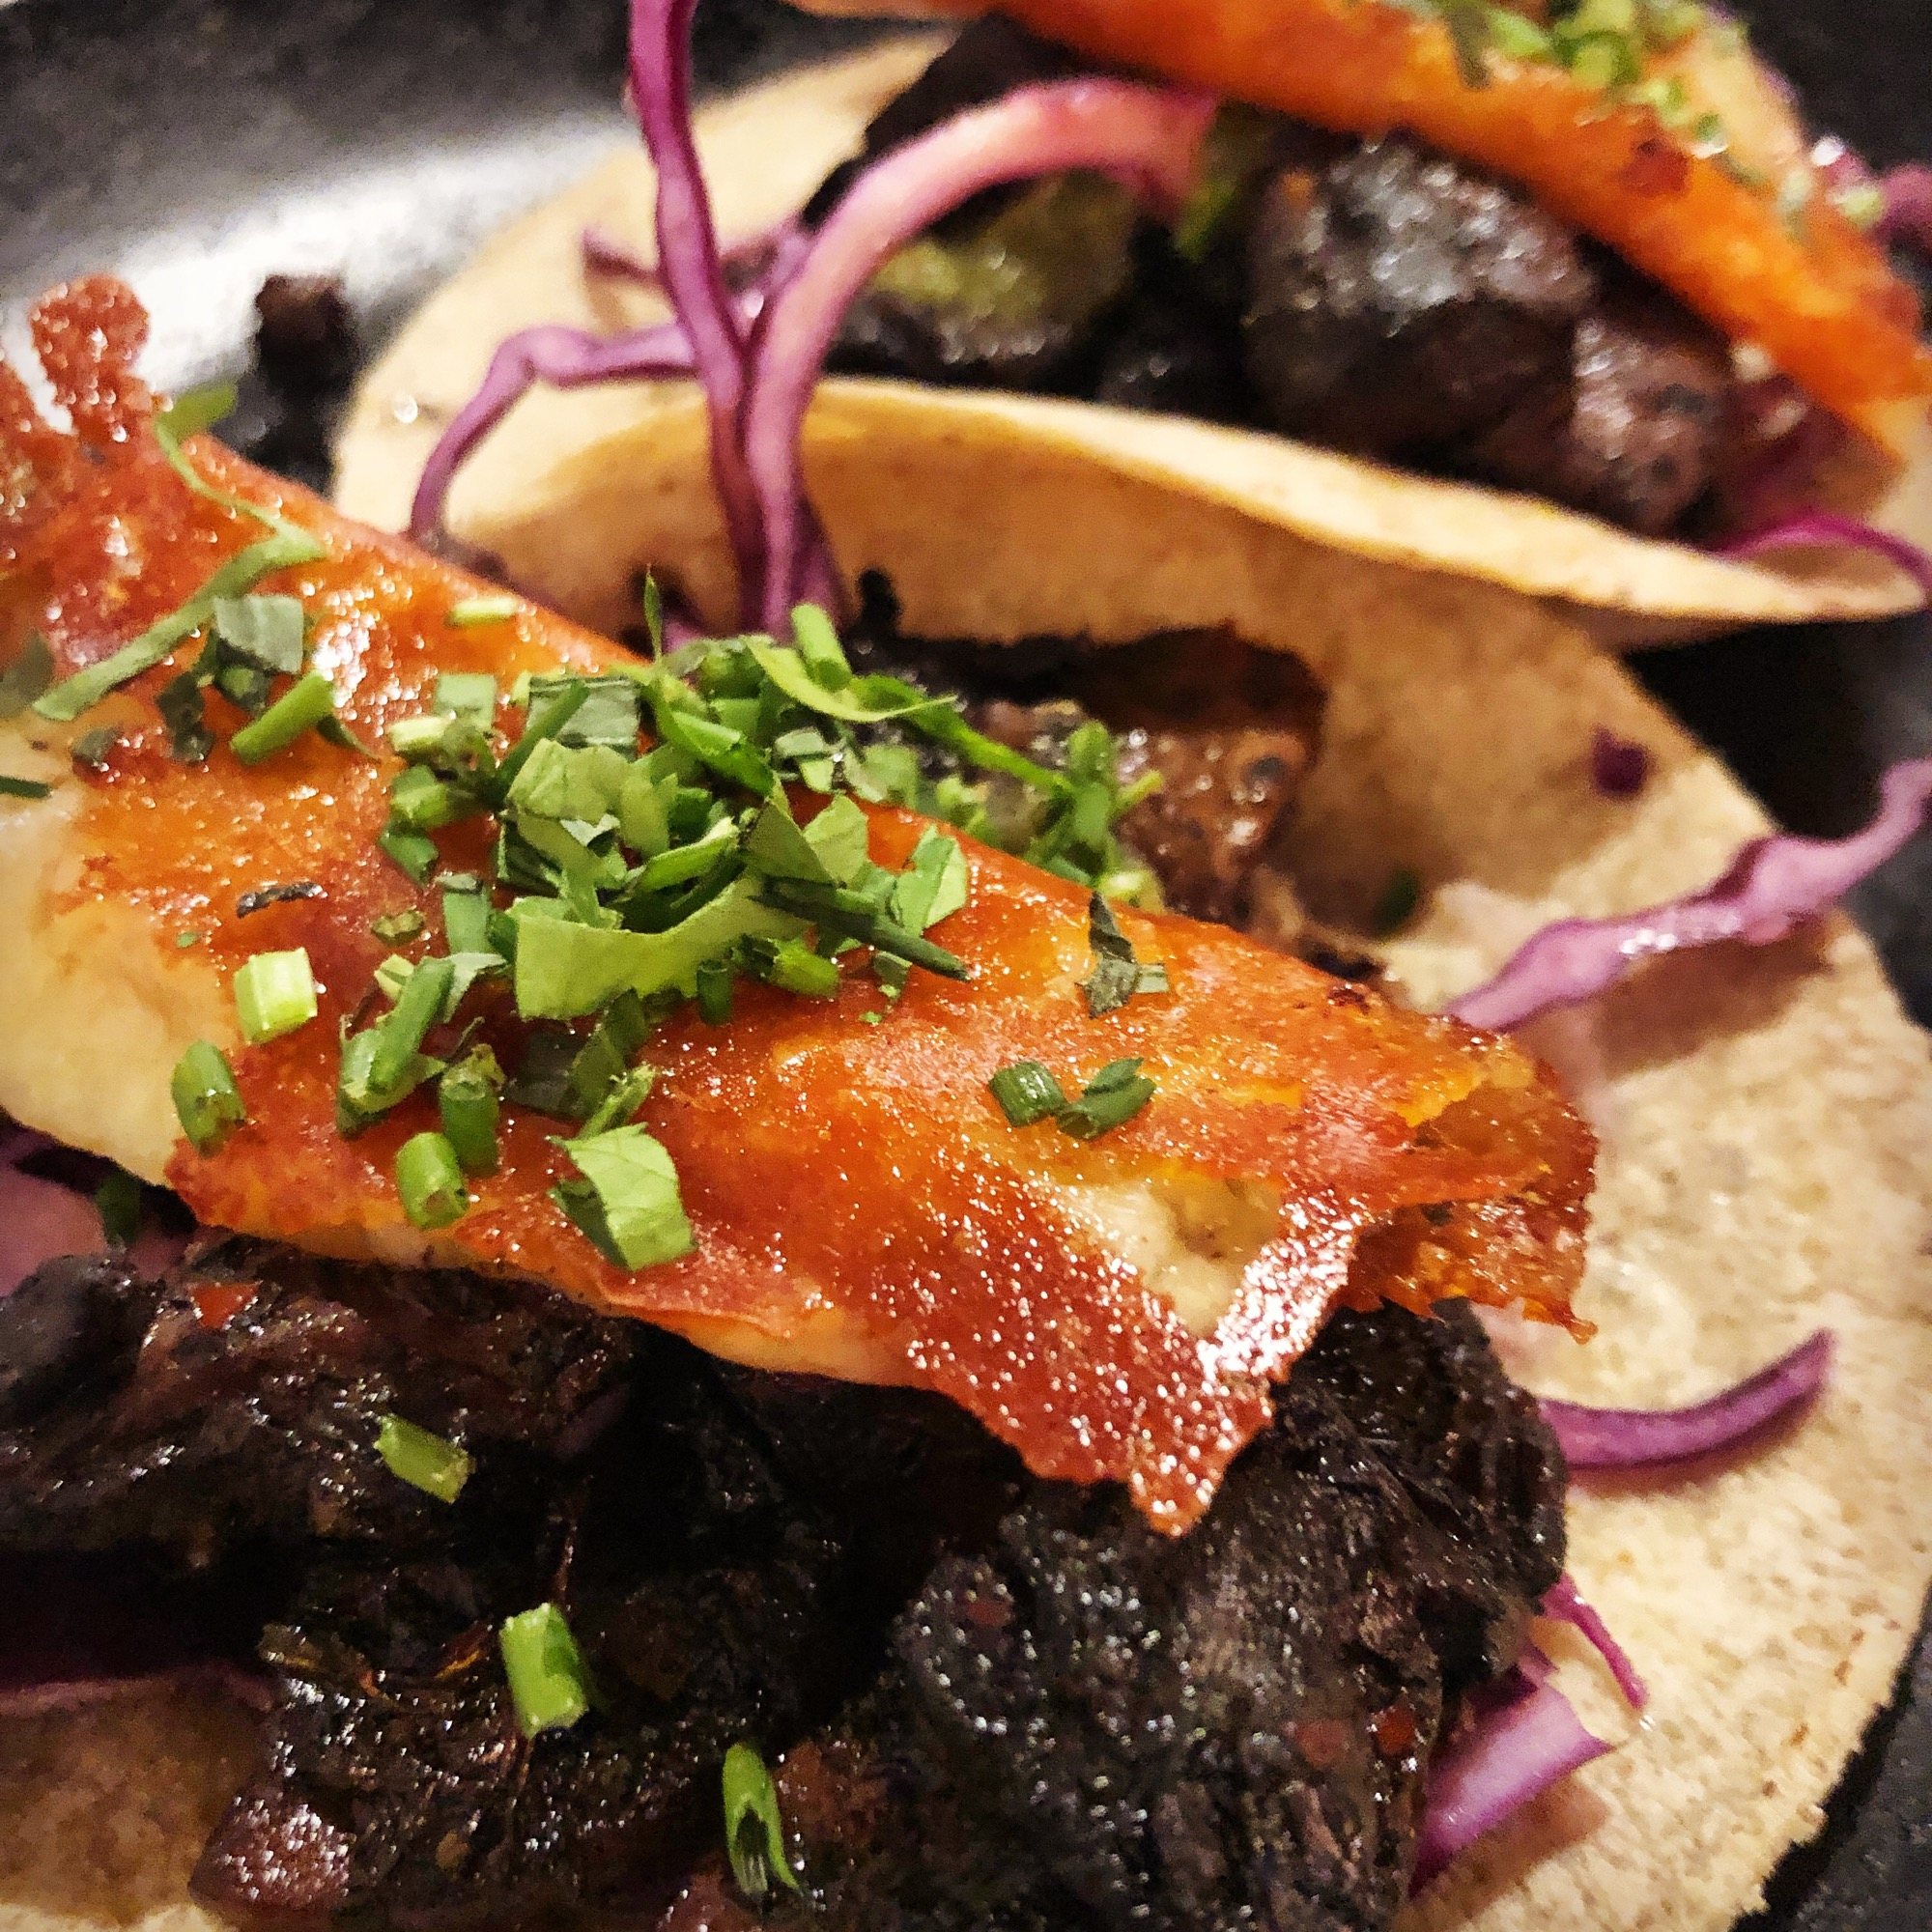 grilled mushroom & cheese tacos